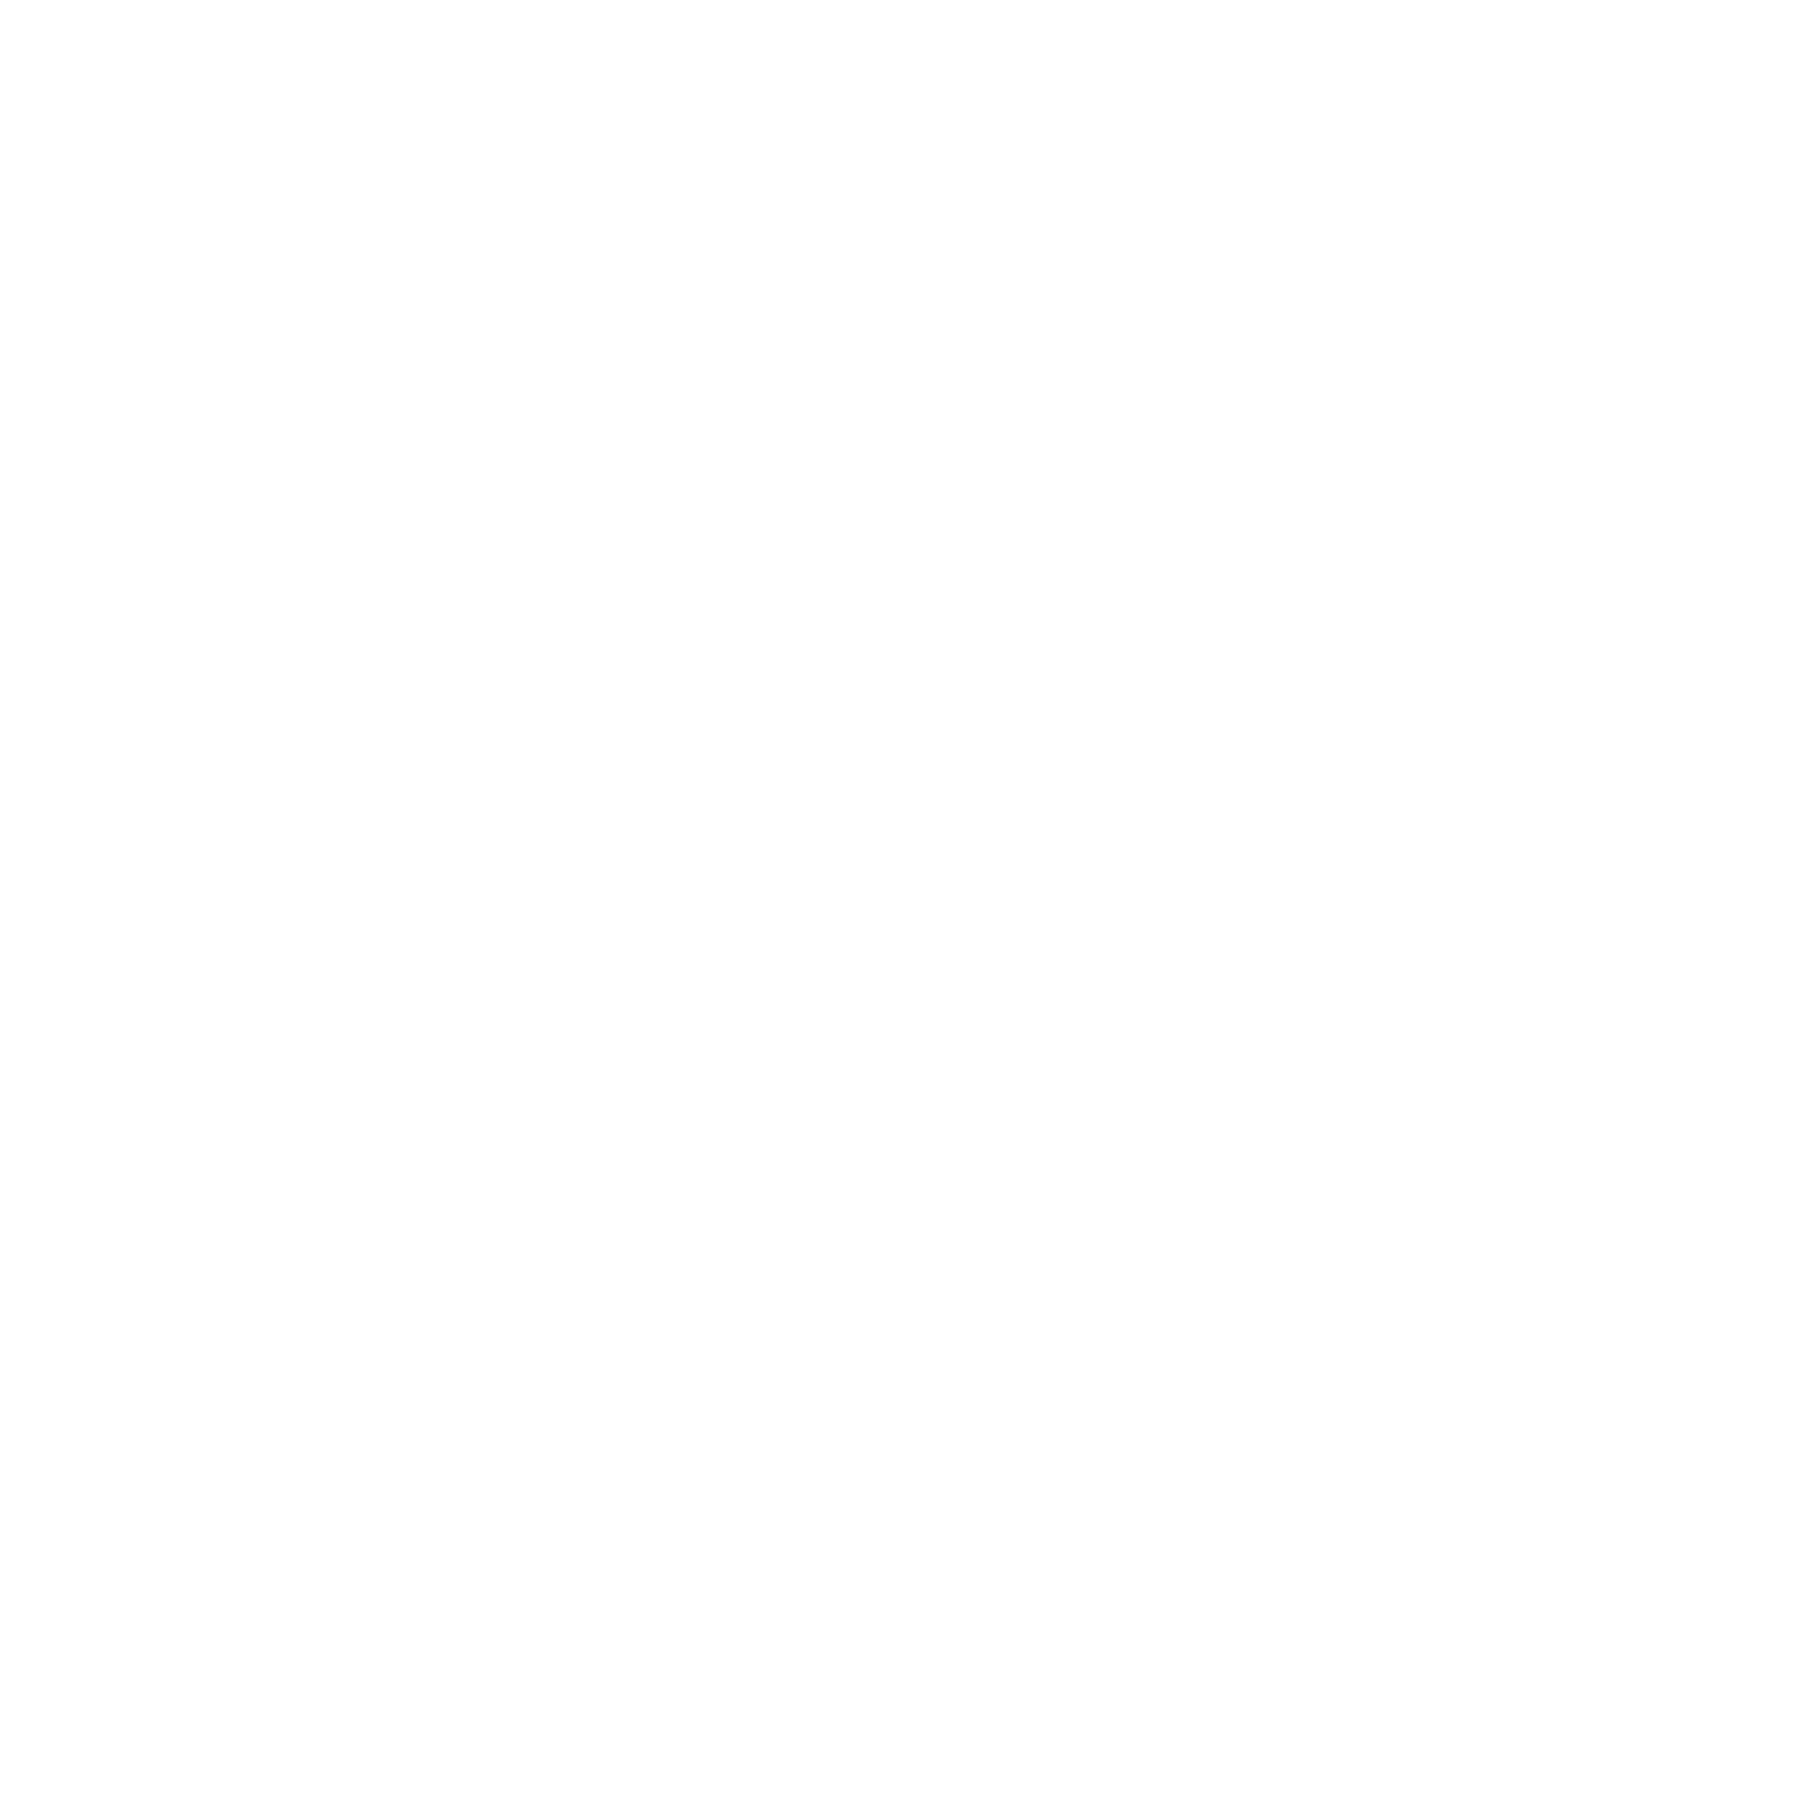 WeCare-Association